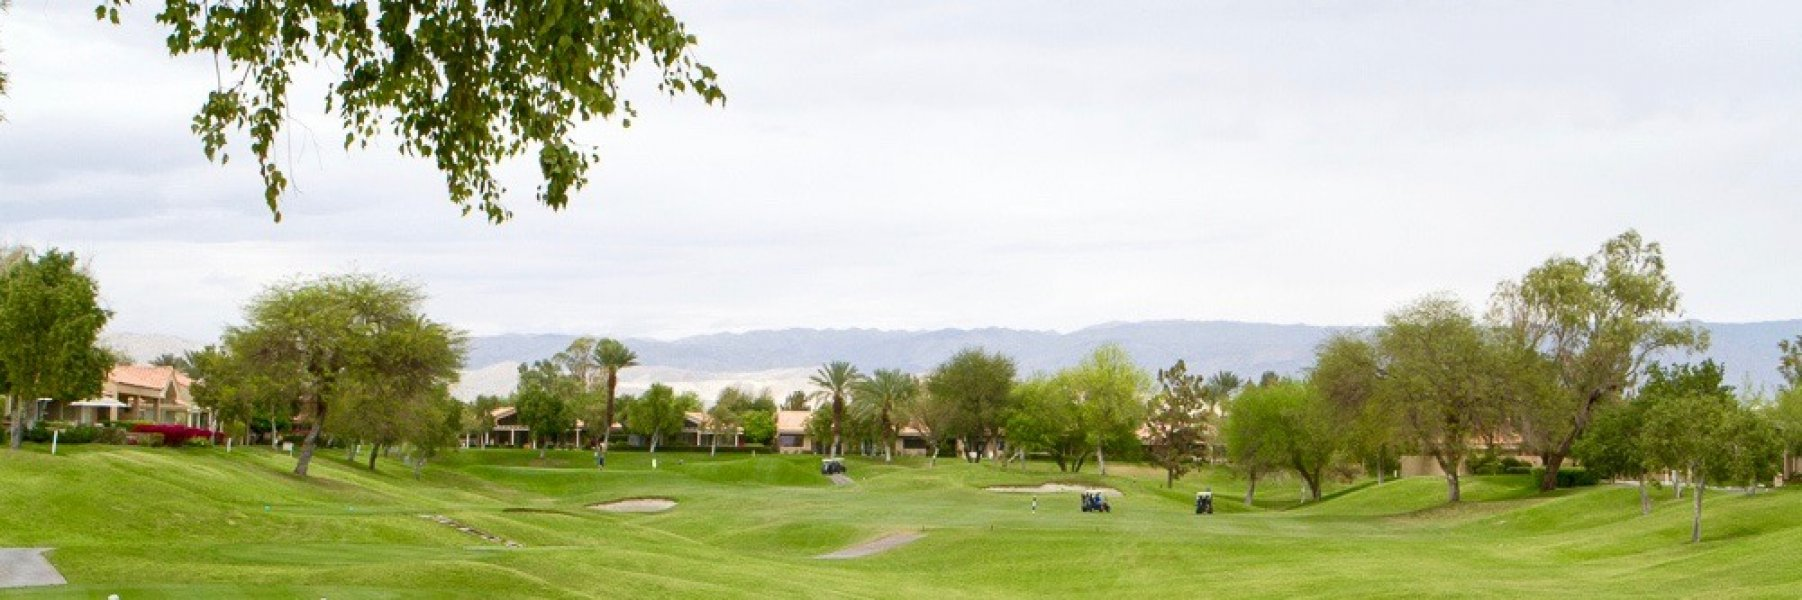 Mission Hills Country Club is a community of homes in Rancho Mirage